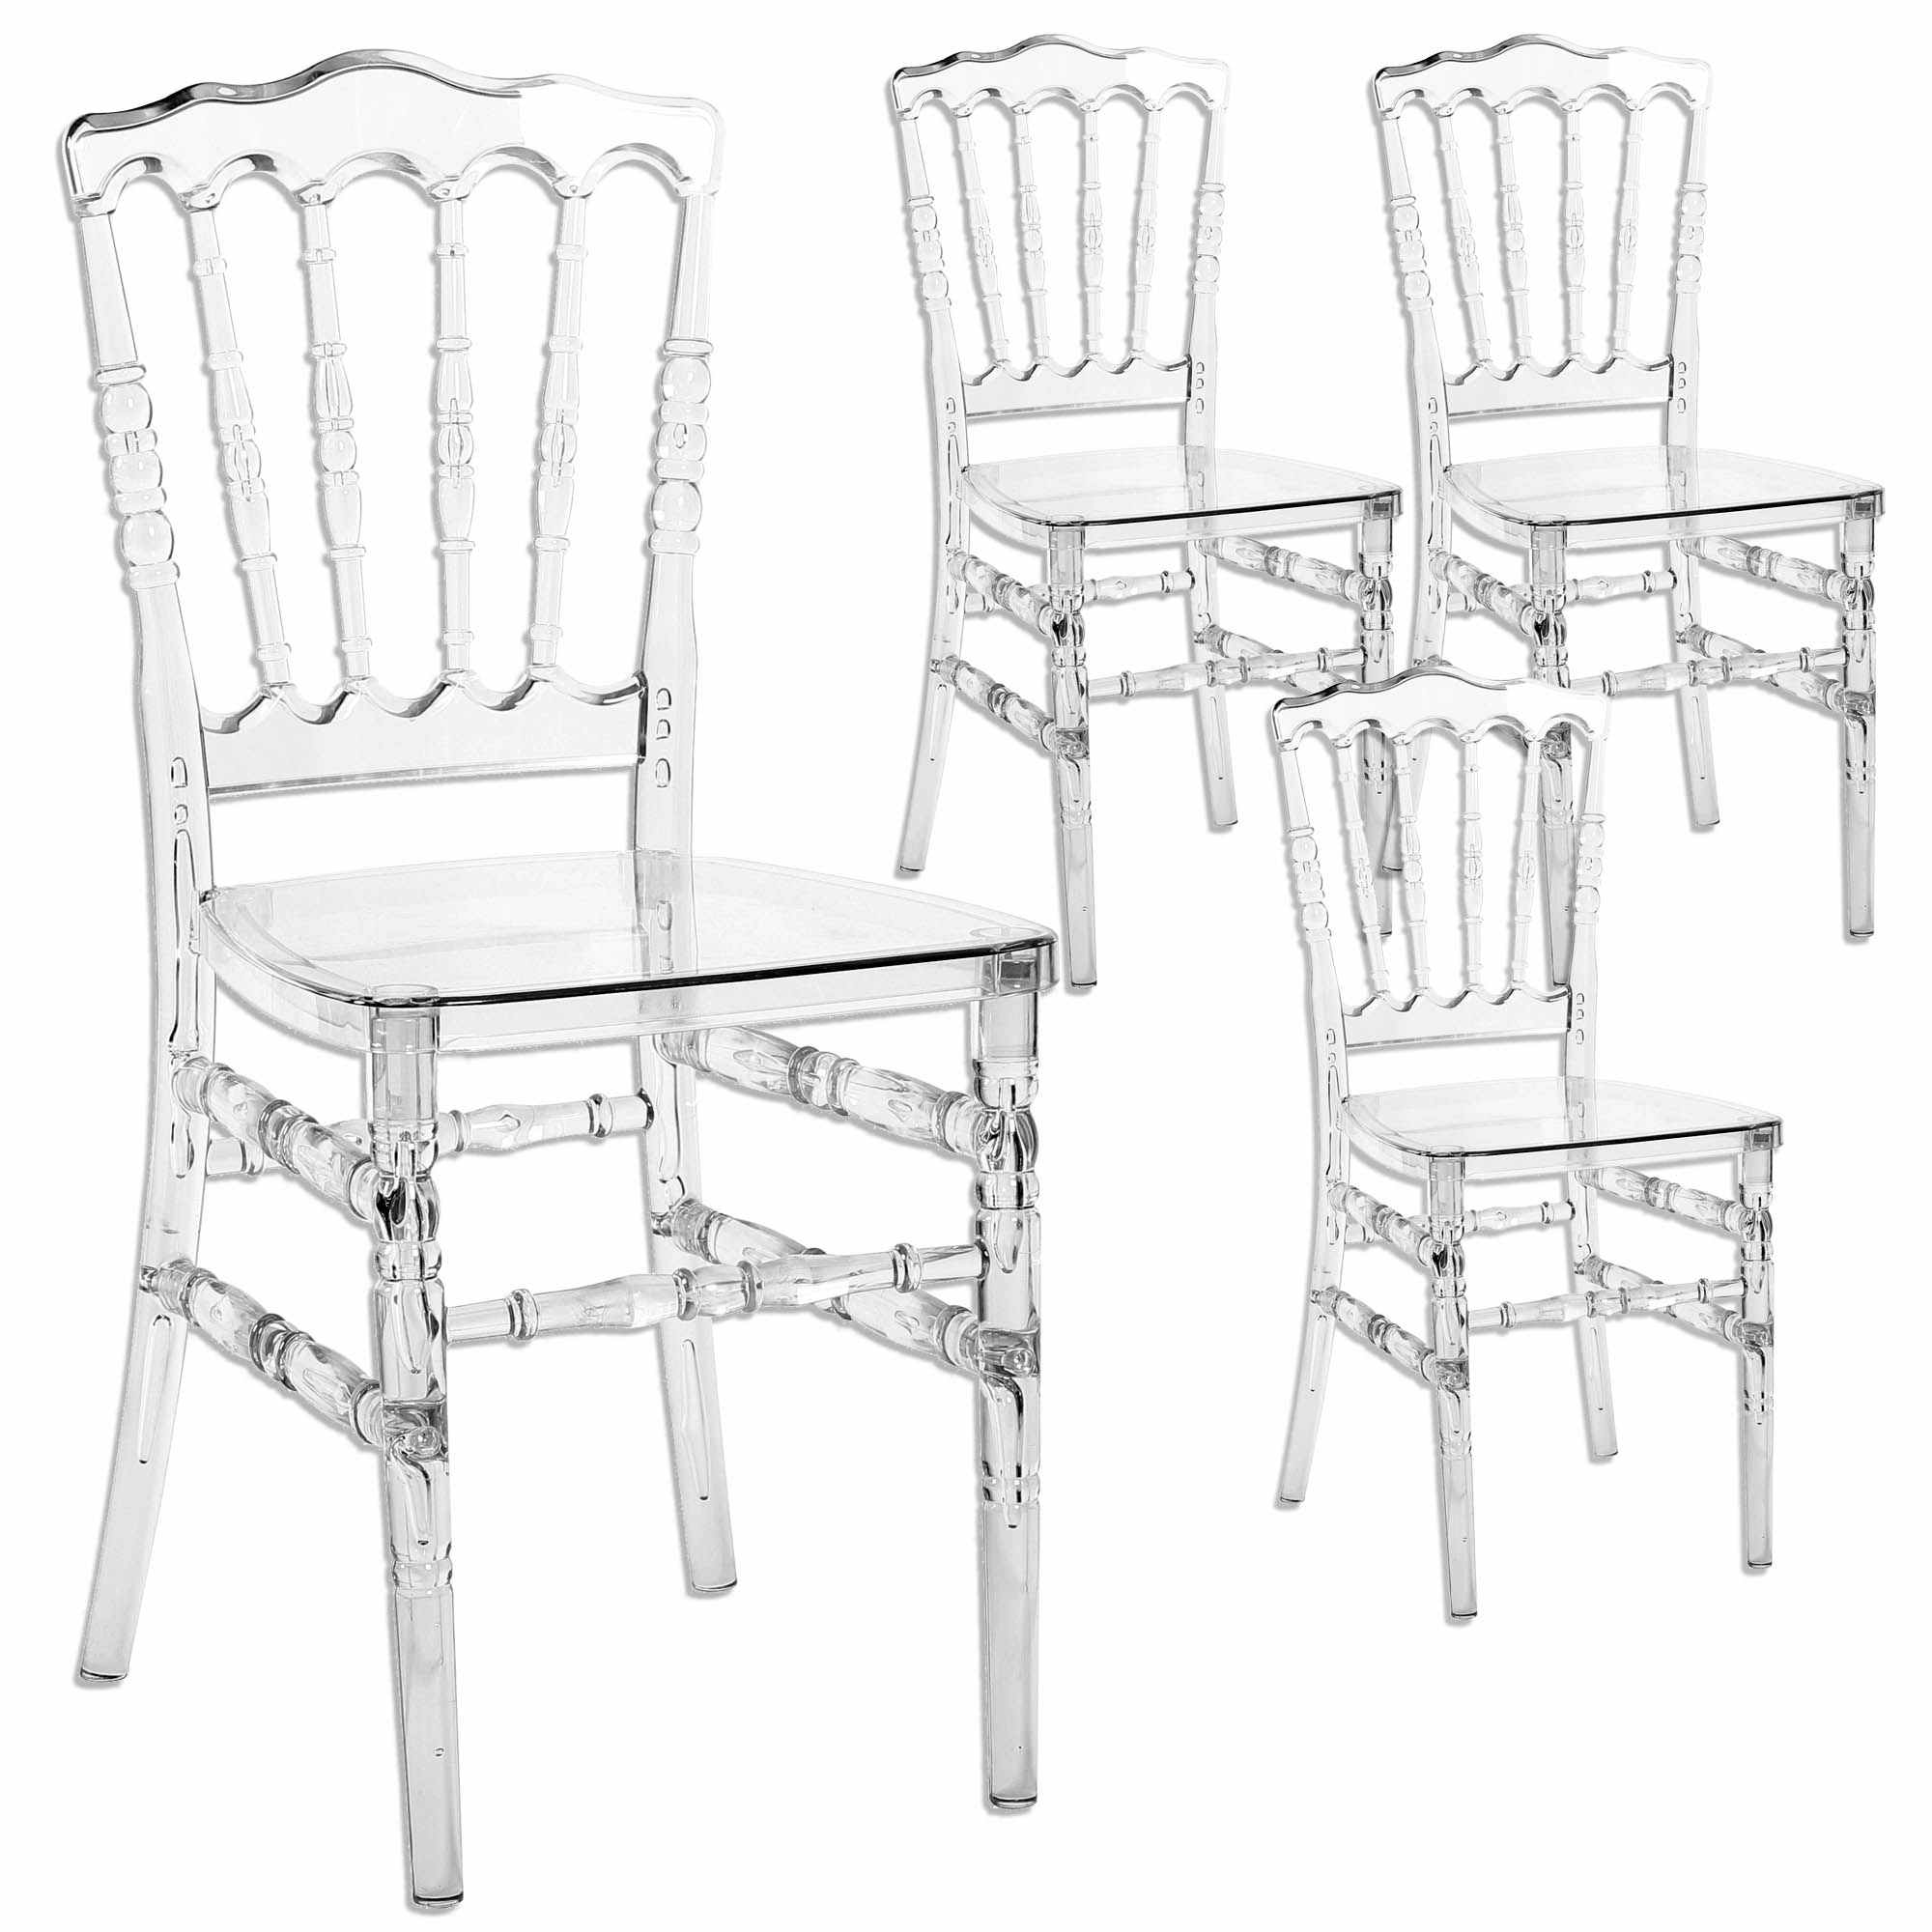 Deco in paris lot de 4 chaises transparent en plexi napoleon napoleon transparent x4 - Chaises napoleon transparente ...